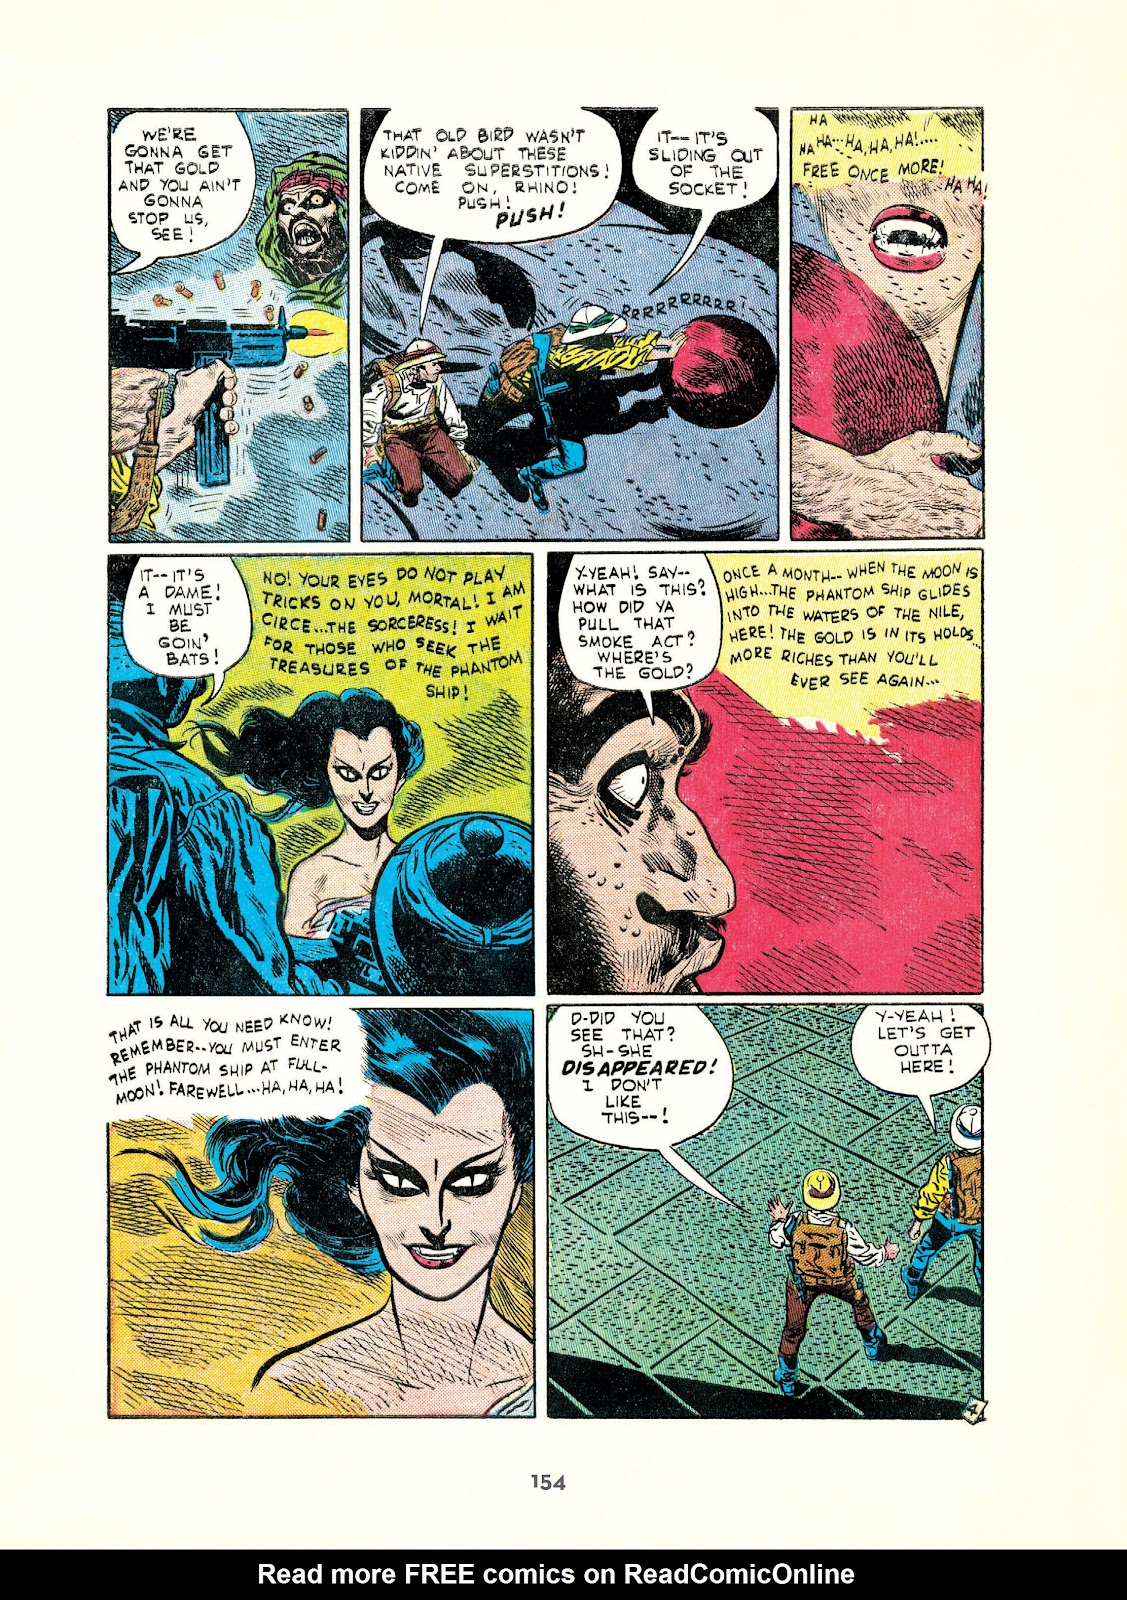 Read online Setting the Standard: Comics by Alex Toth 1952-1954 comic -  Issue # TPB (Part 2) - 55